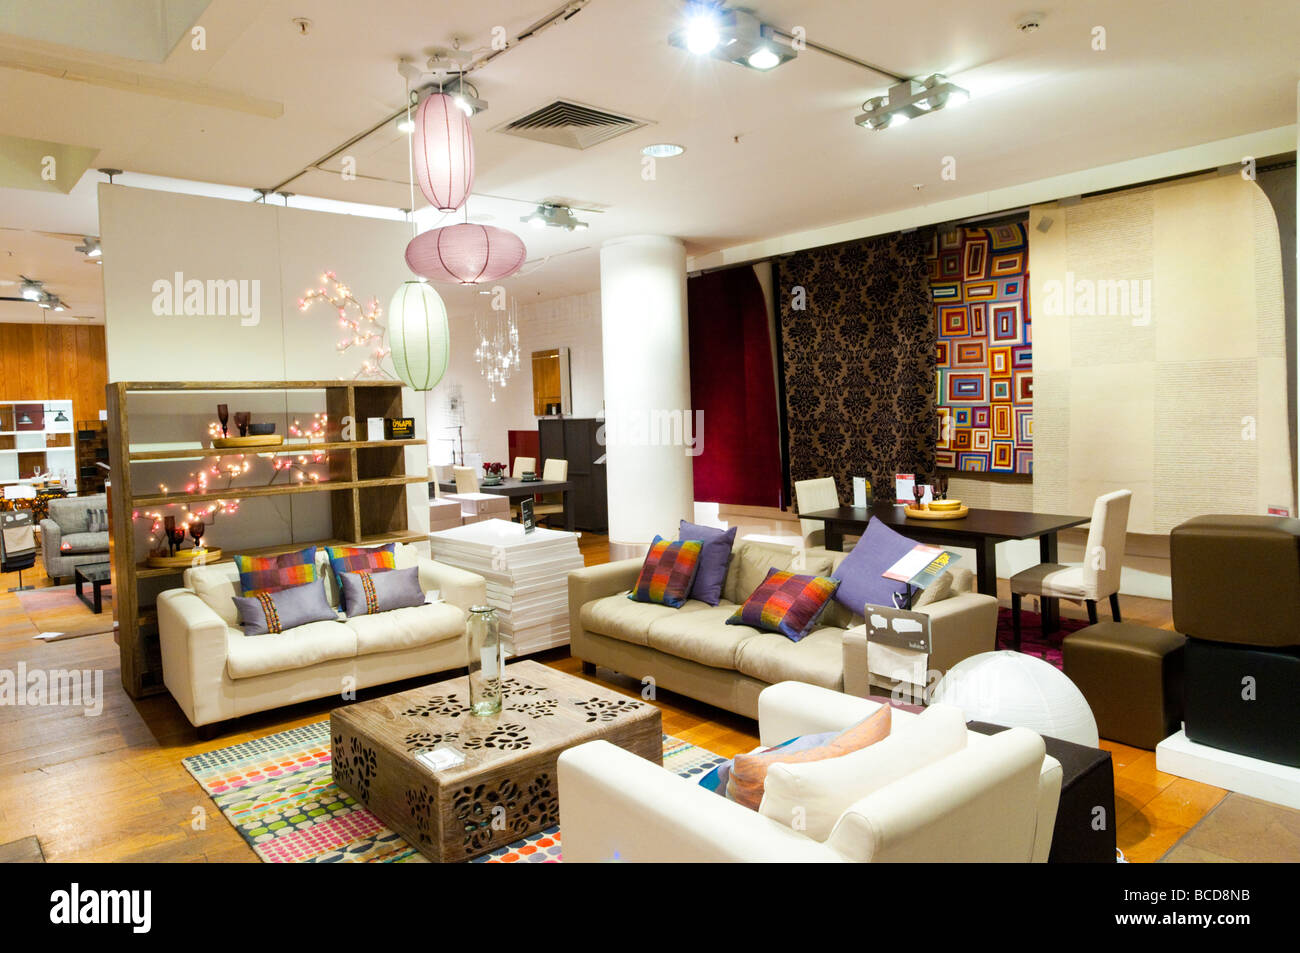 habitat furniture store london england uk stock photo 24878487 alamy